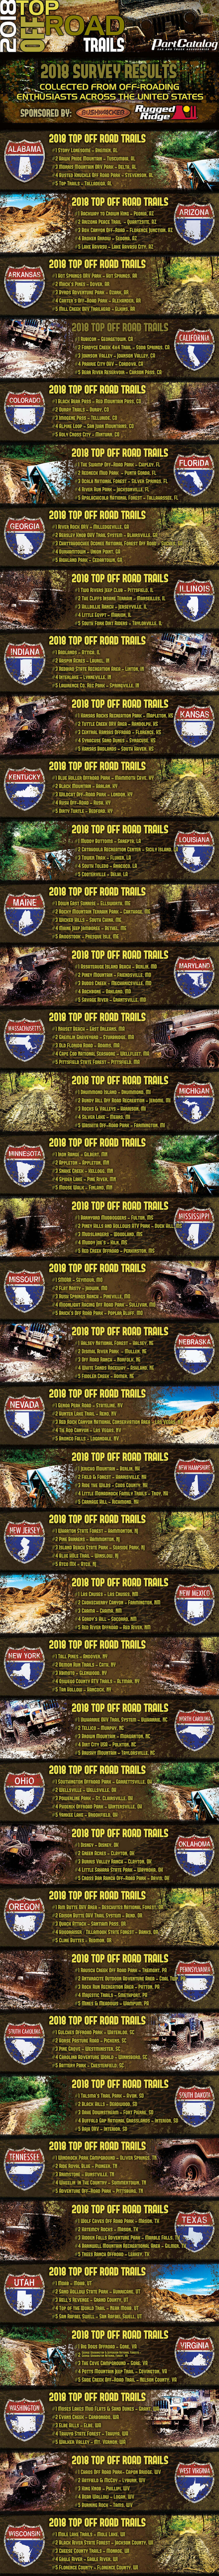 Top Off-Roading Trails 2018 - 2019